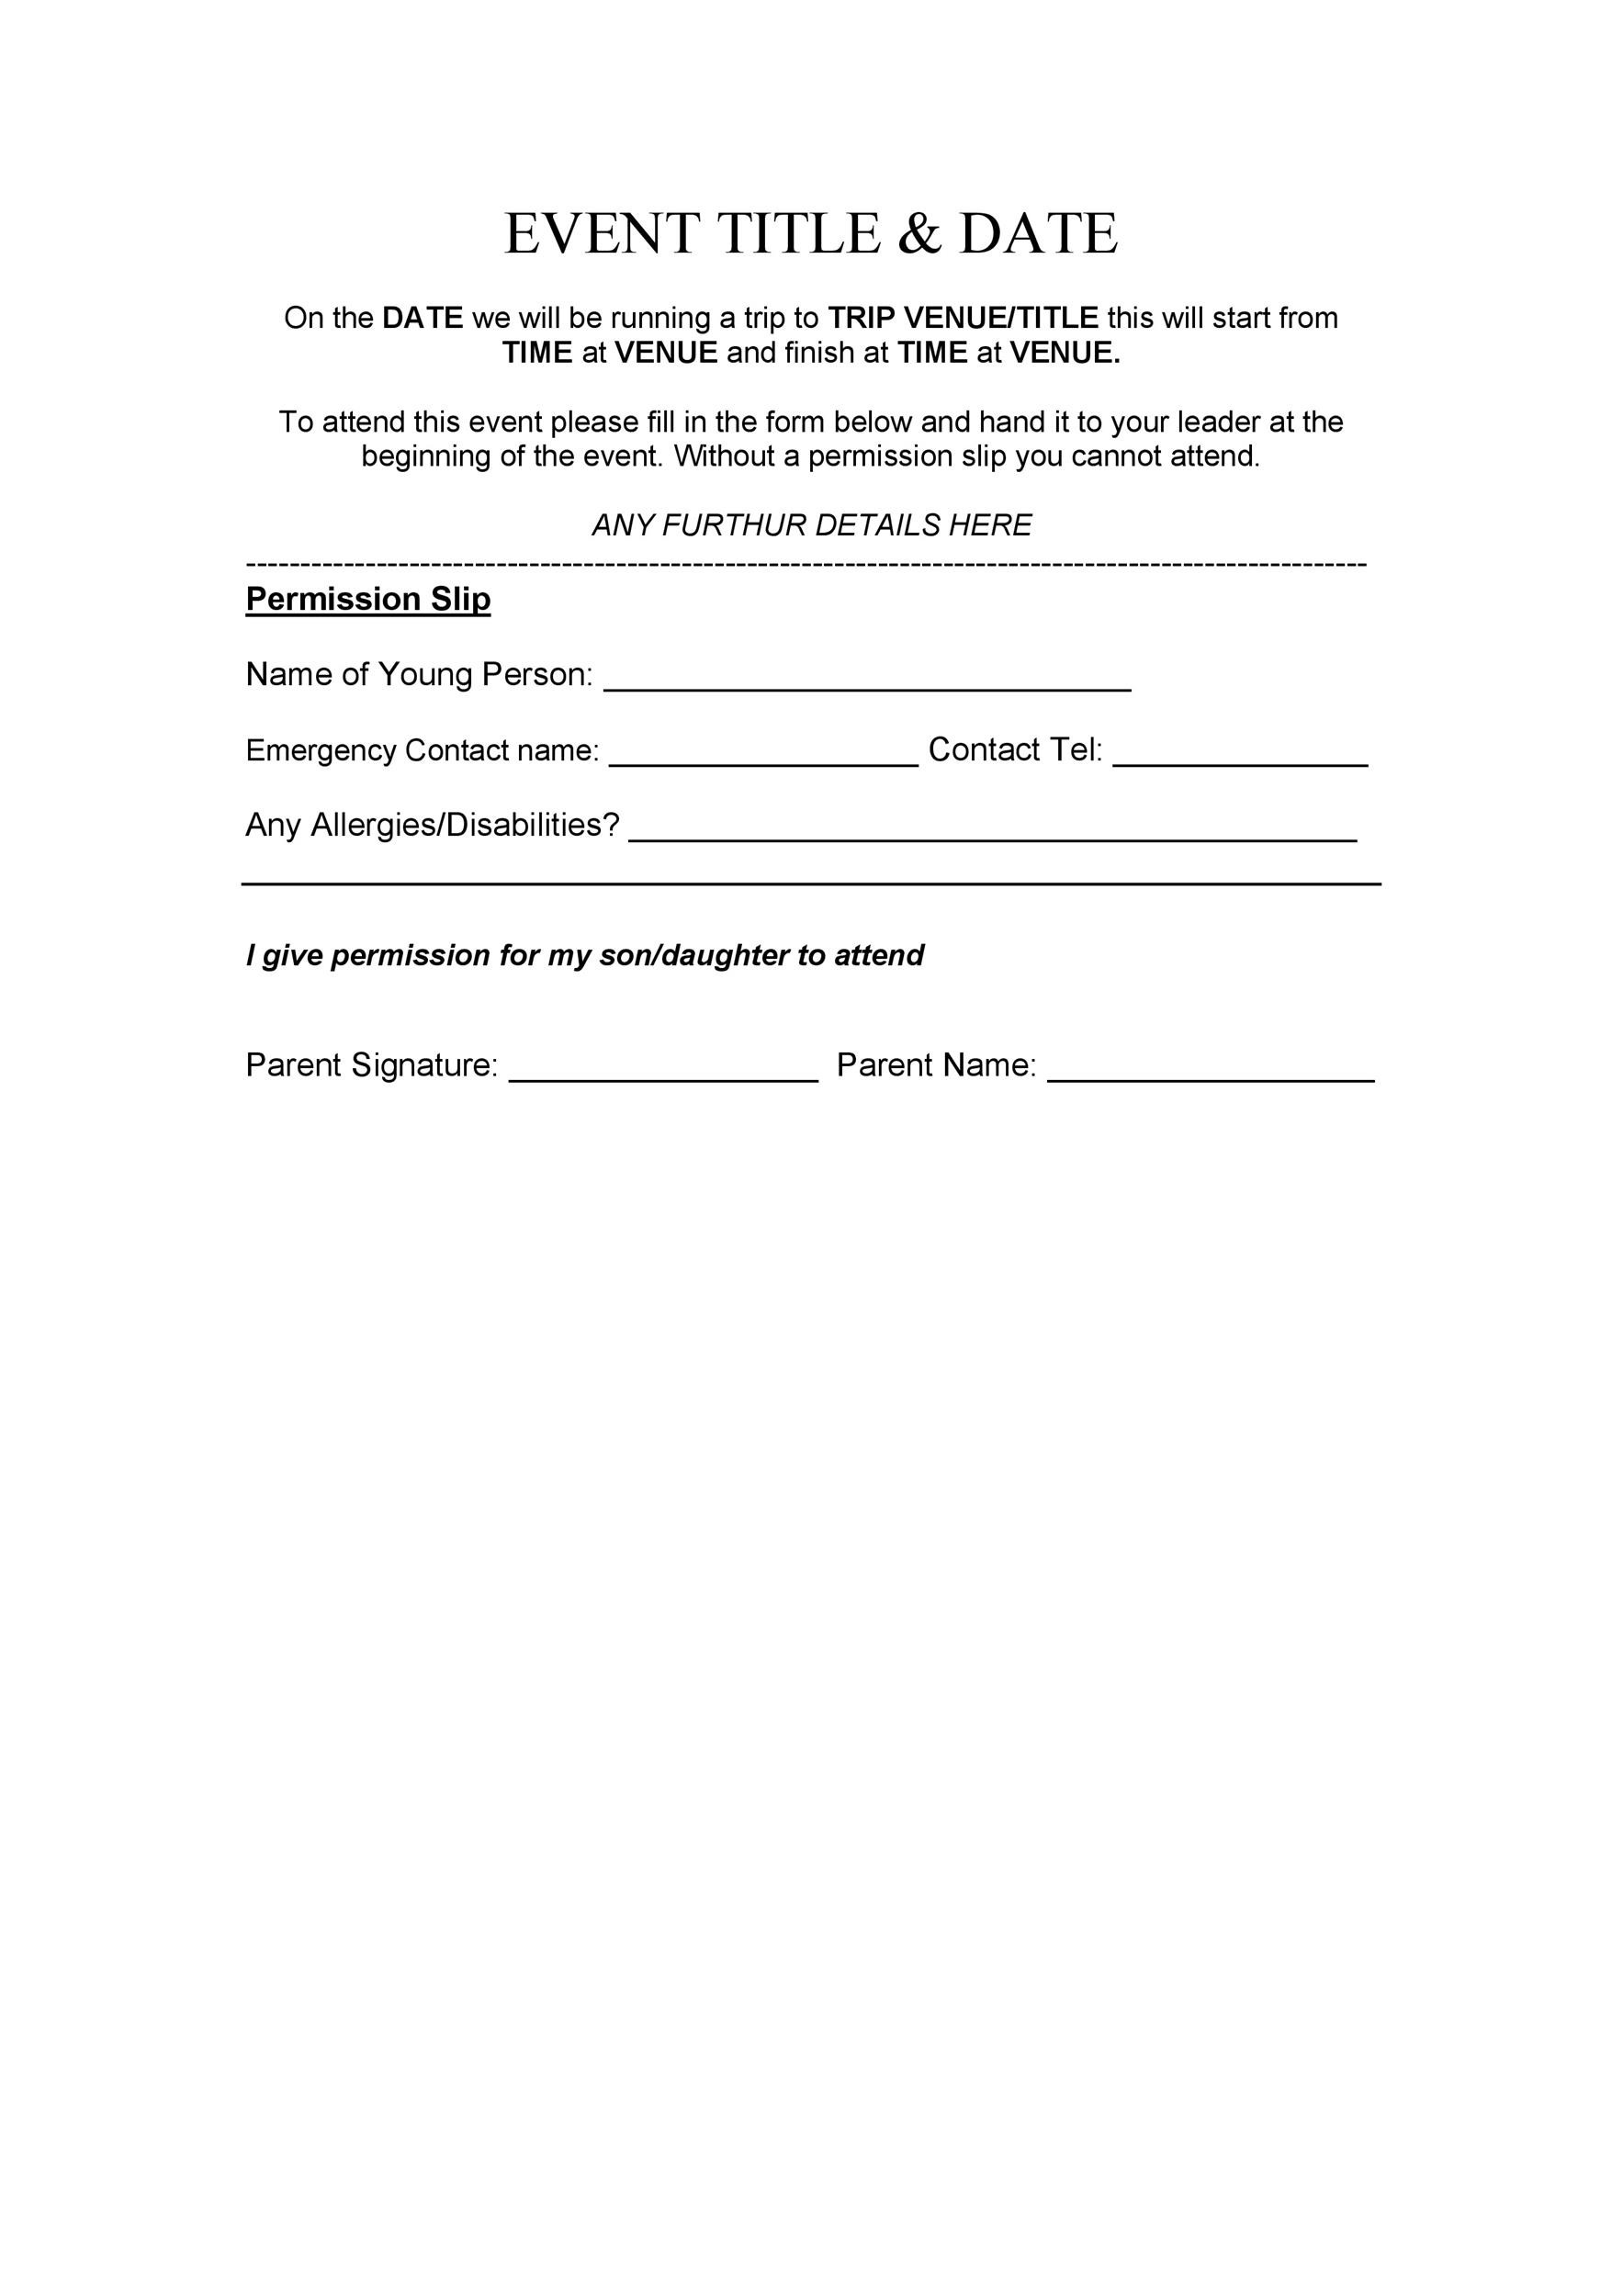 Printable Permission Slip 10